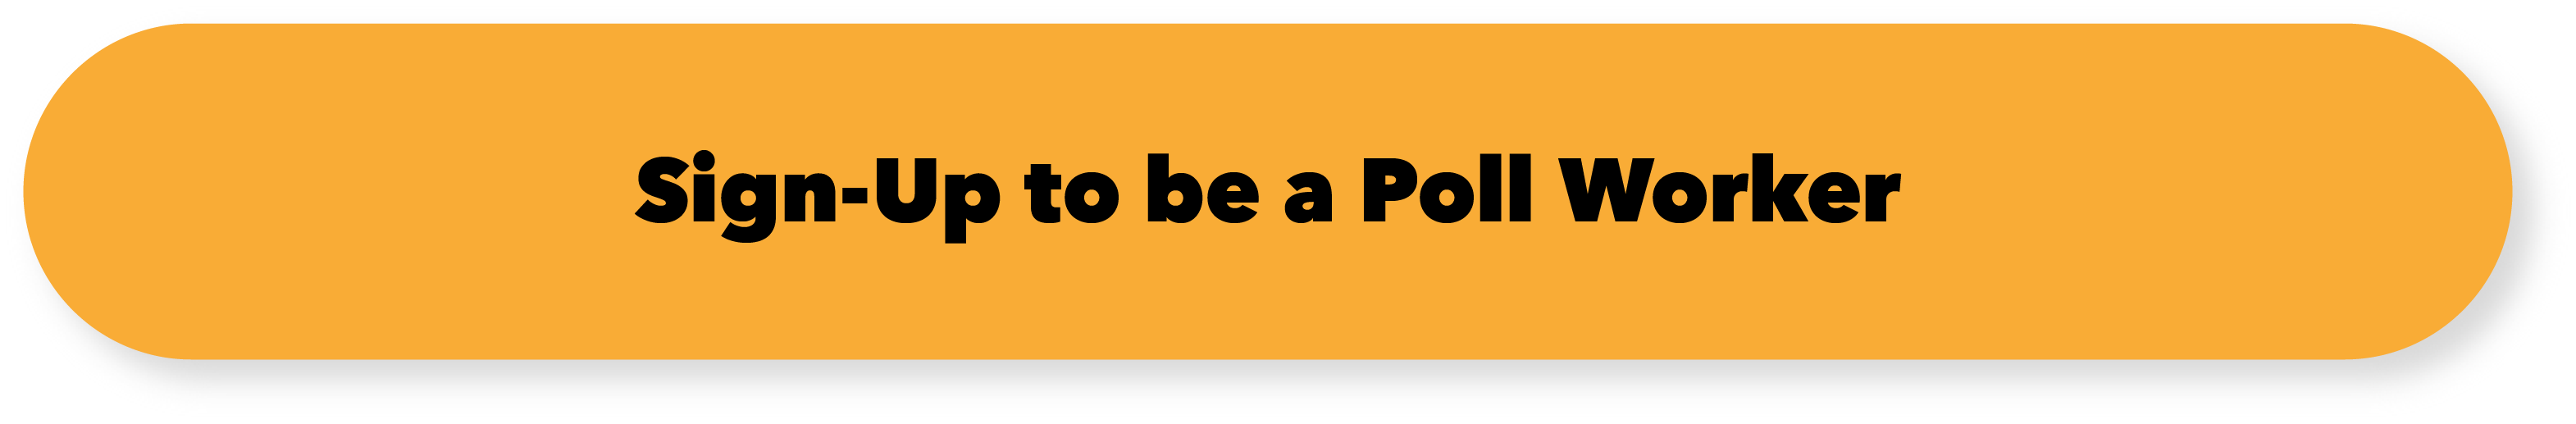 sign up to be a poll worker